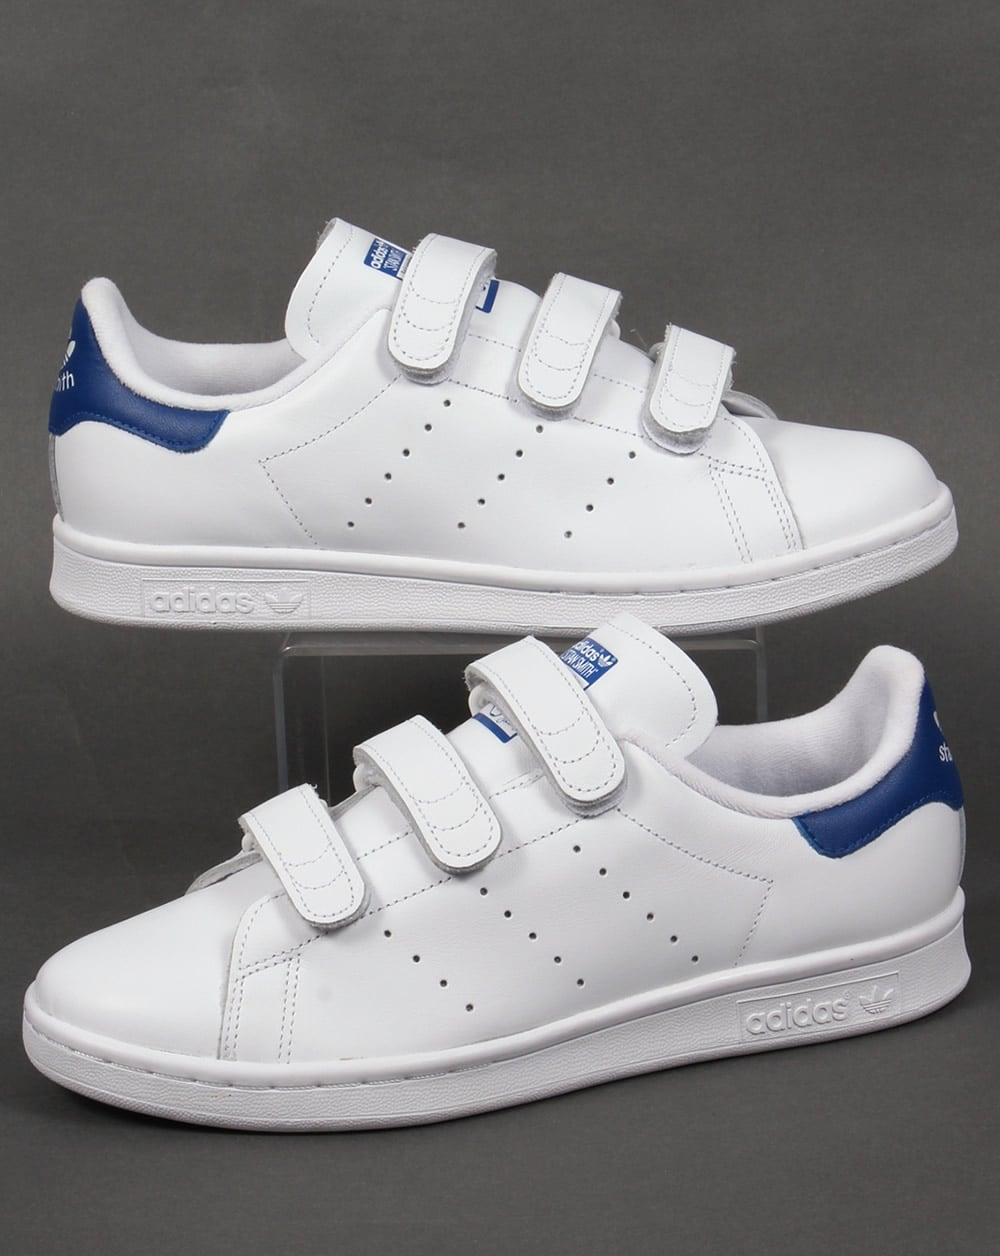 super popular c585b 88fb3 Adidas Stan Smith CF Trainers White/Royal Blue